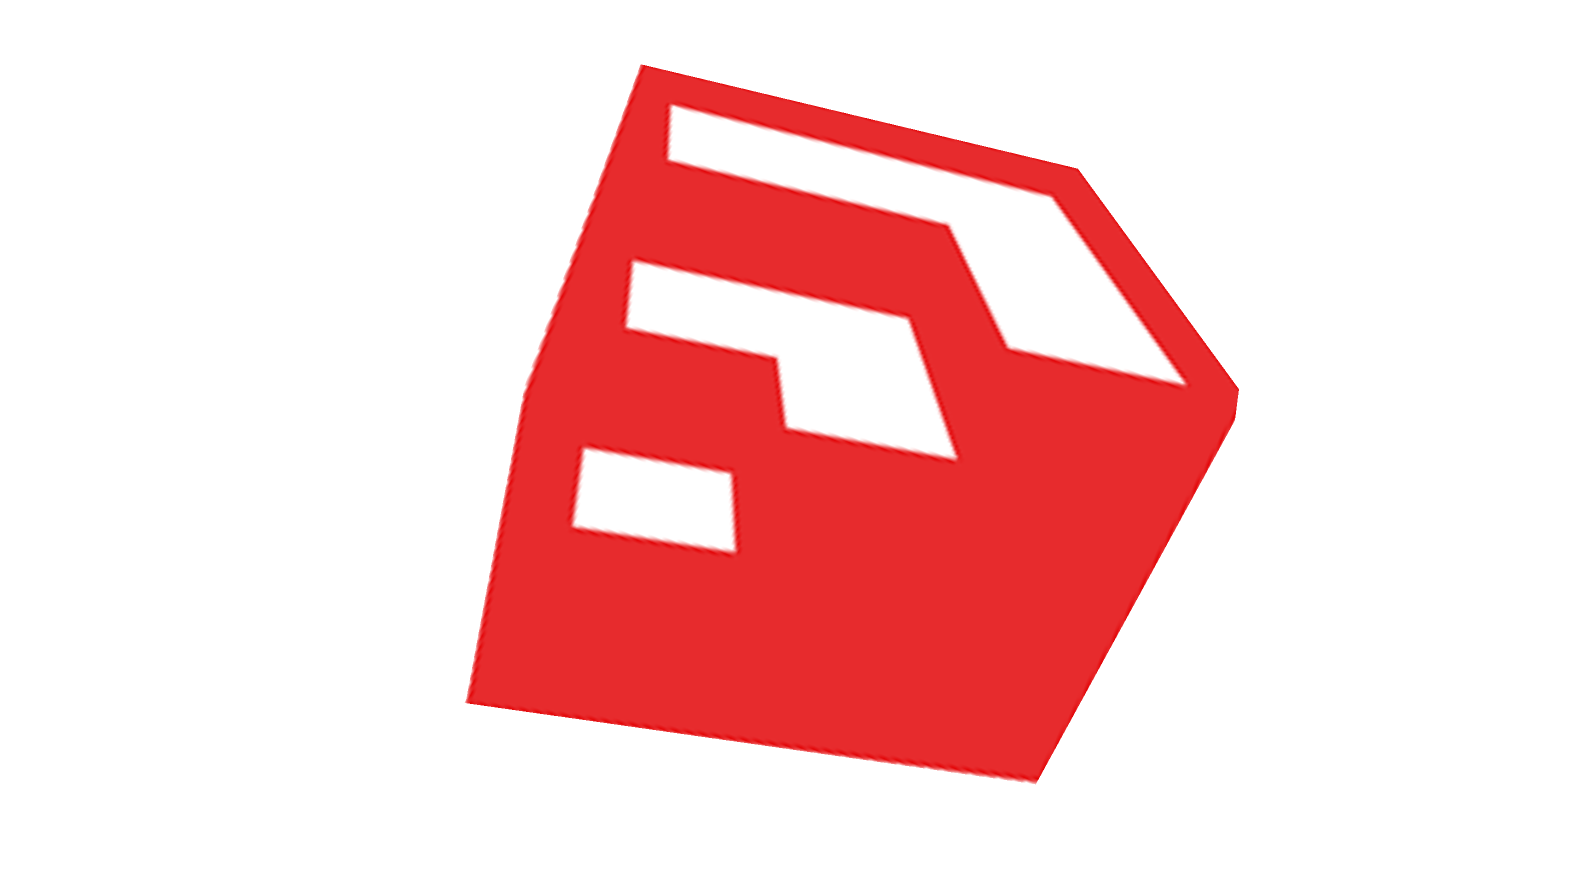 Sketchup Logo Png, png collections at sccpre.cat.